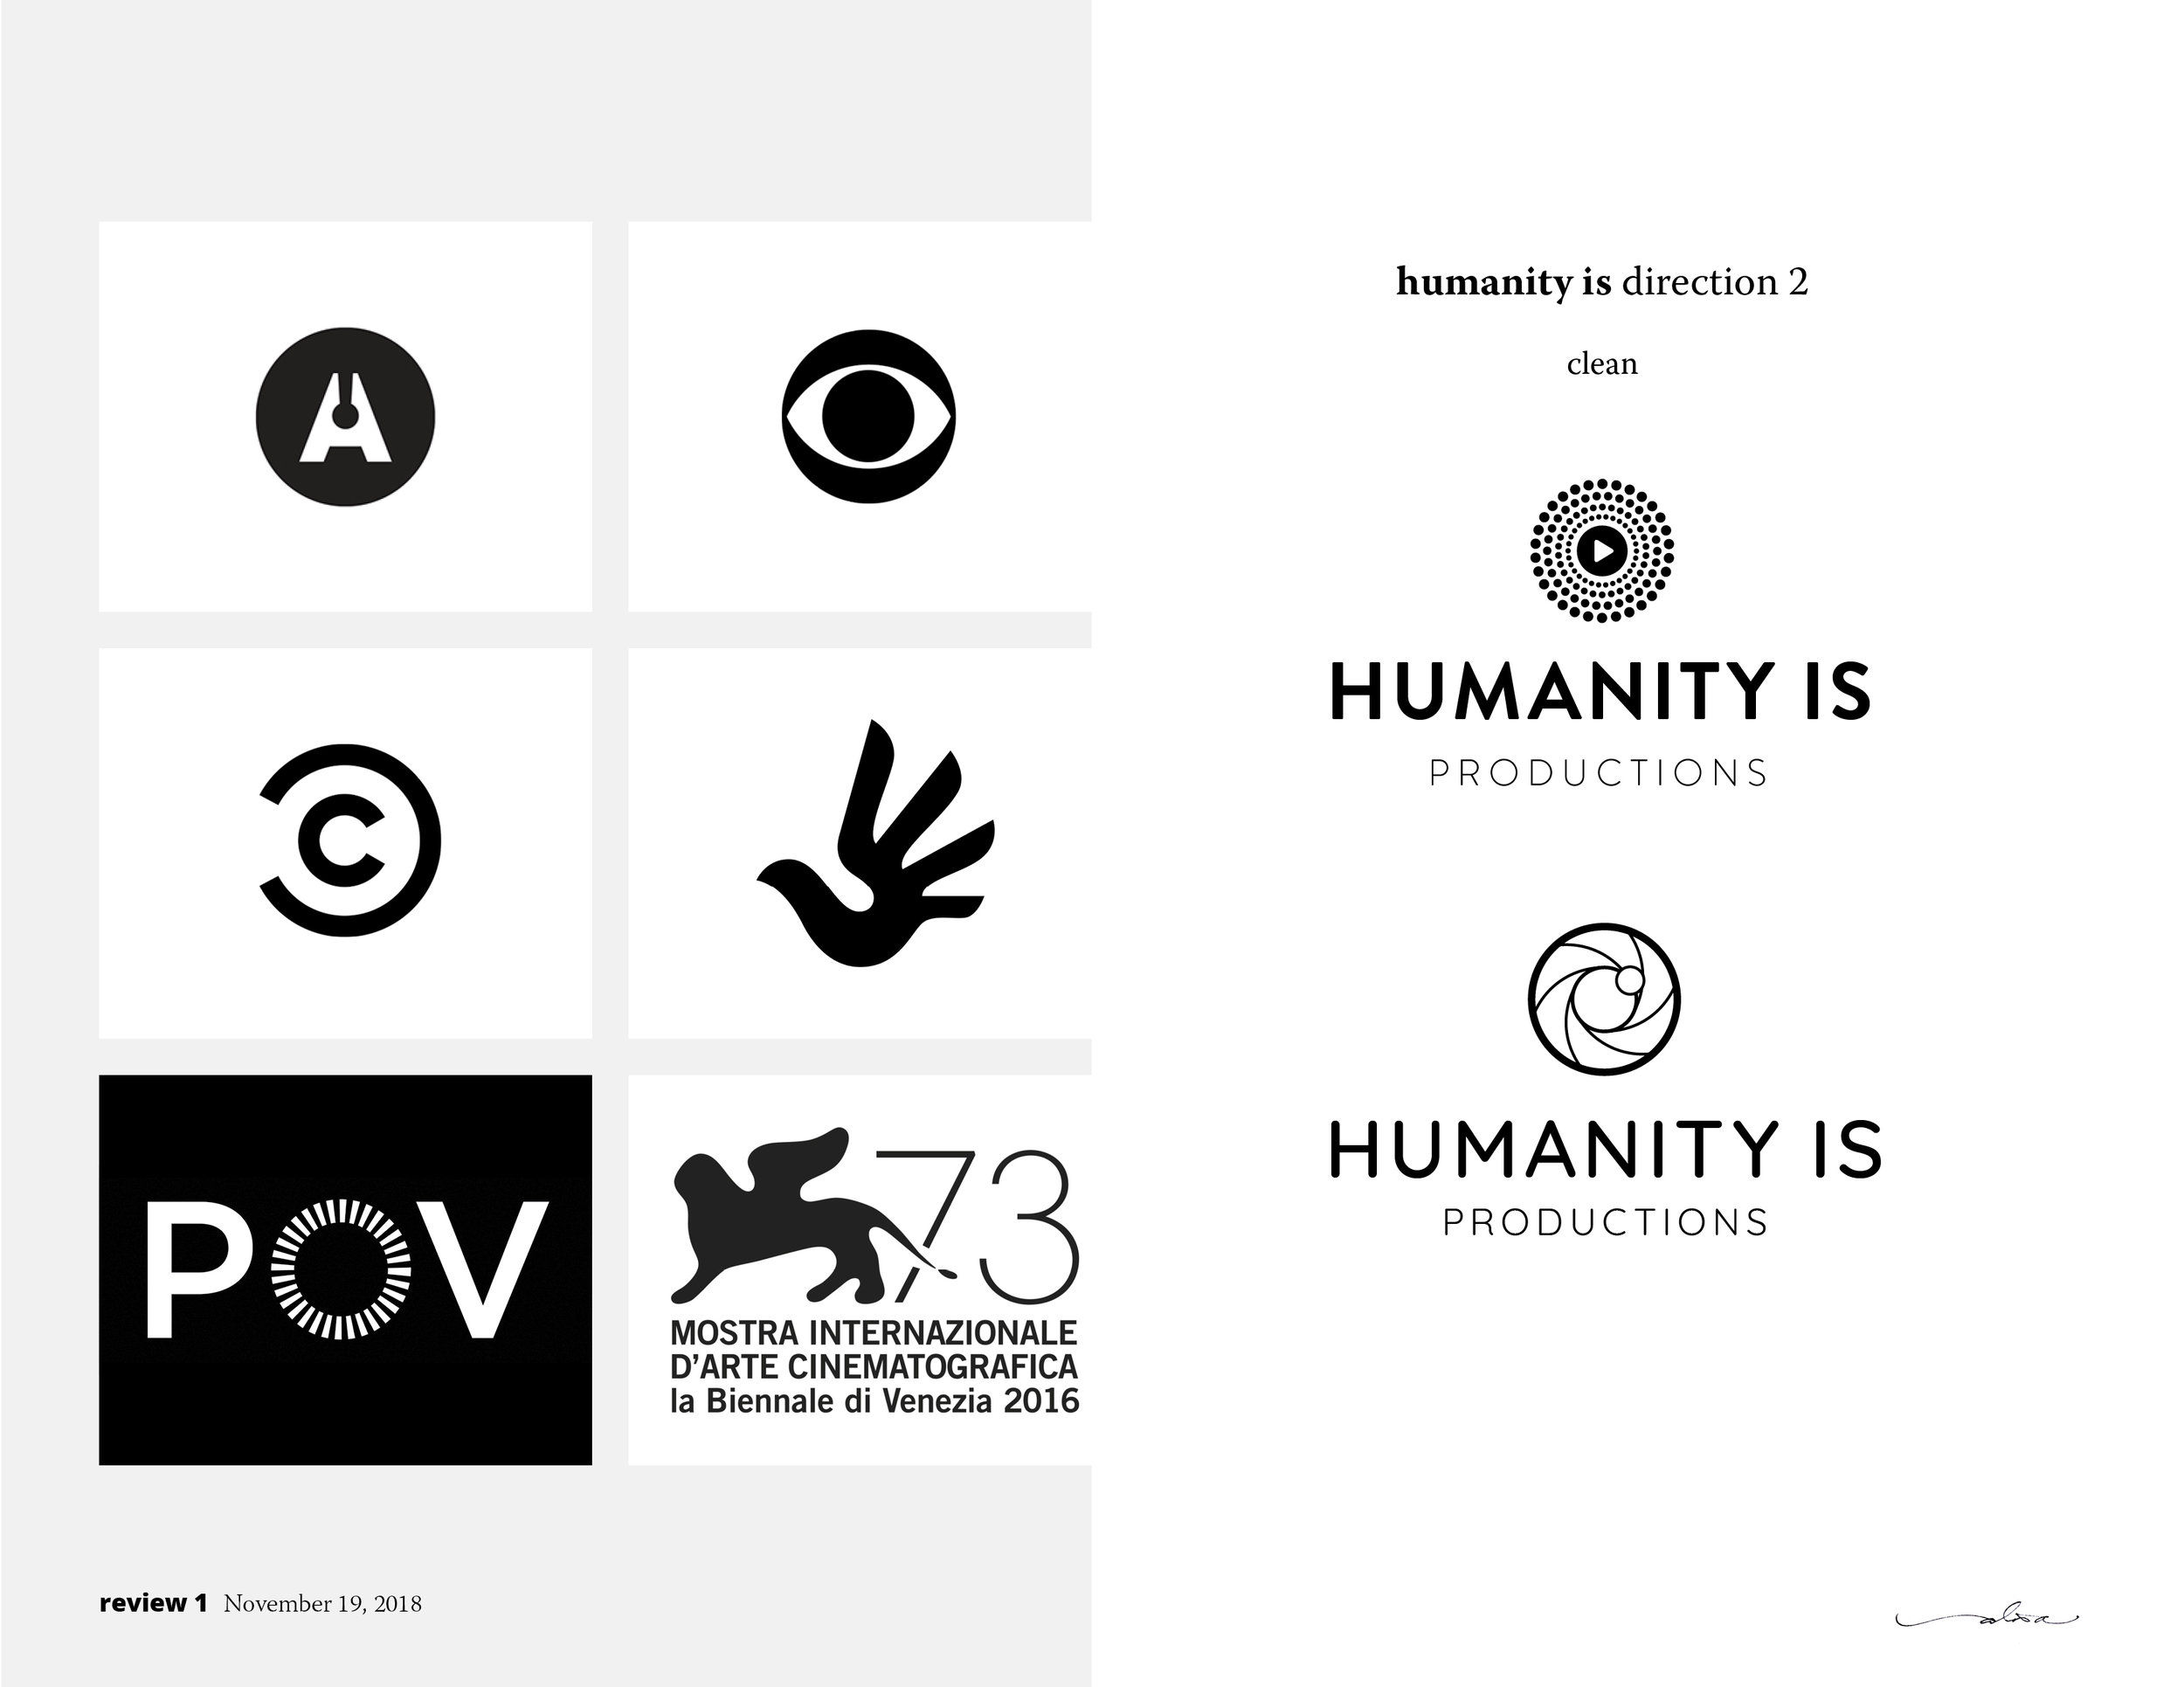 20181119_HumanityIs-Logo_Review1-v12.jpg